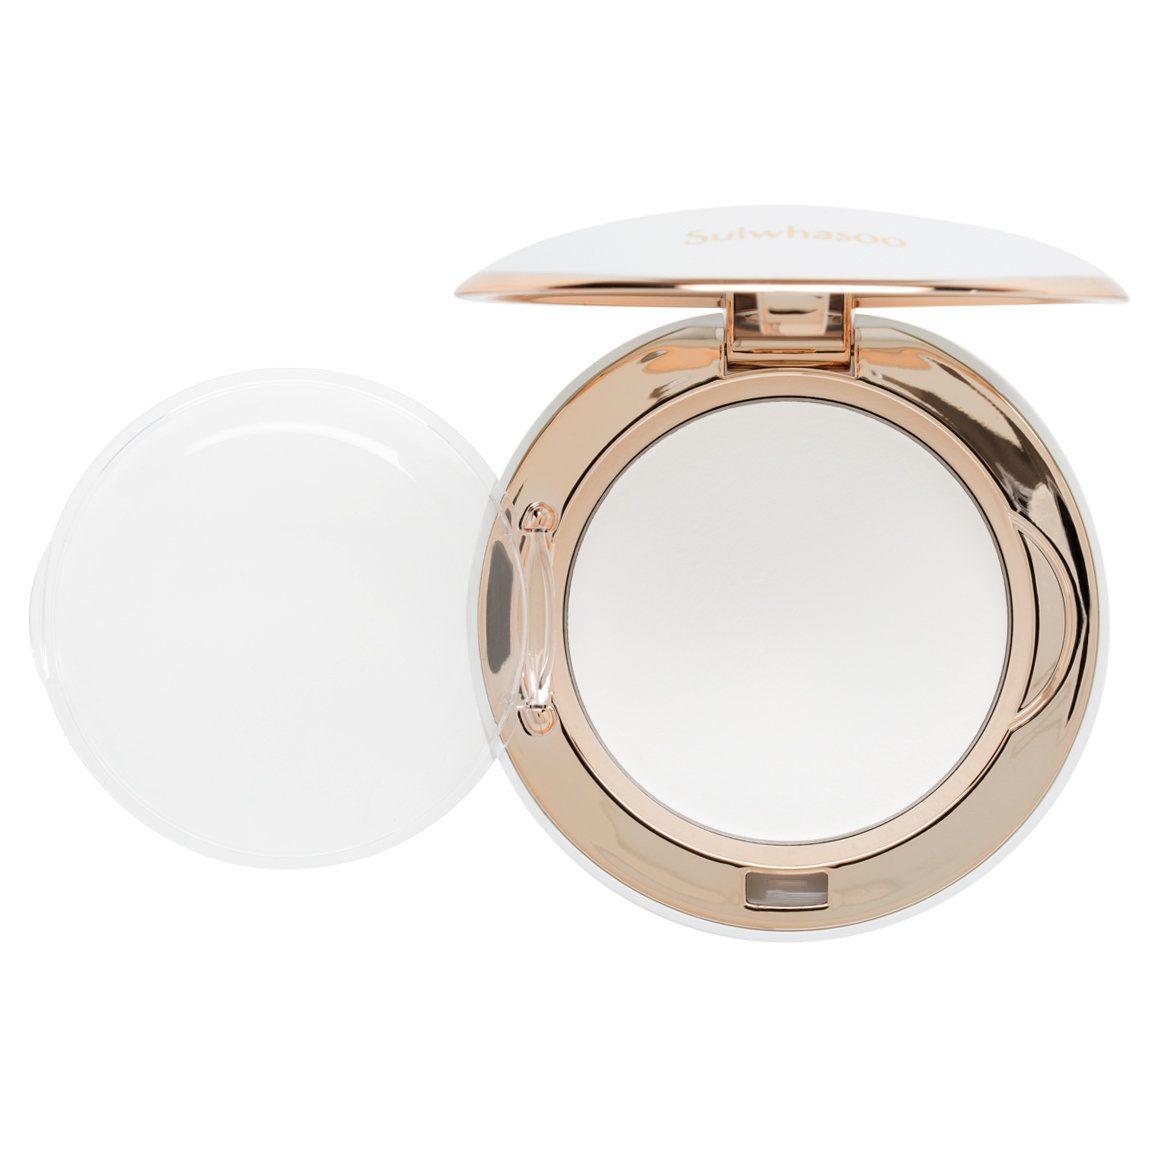 Sulwhasoo 	Powder For Cushion product smear.